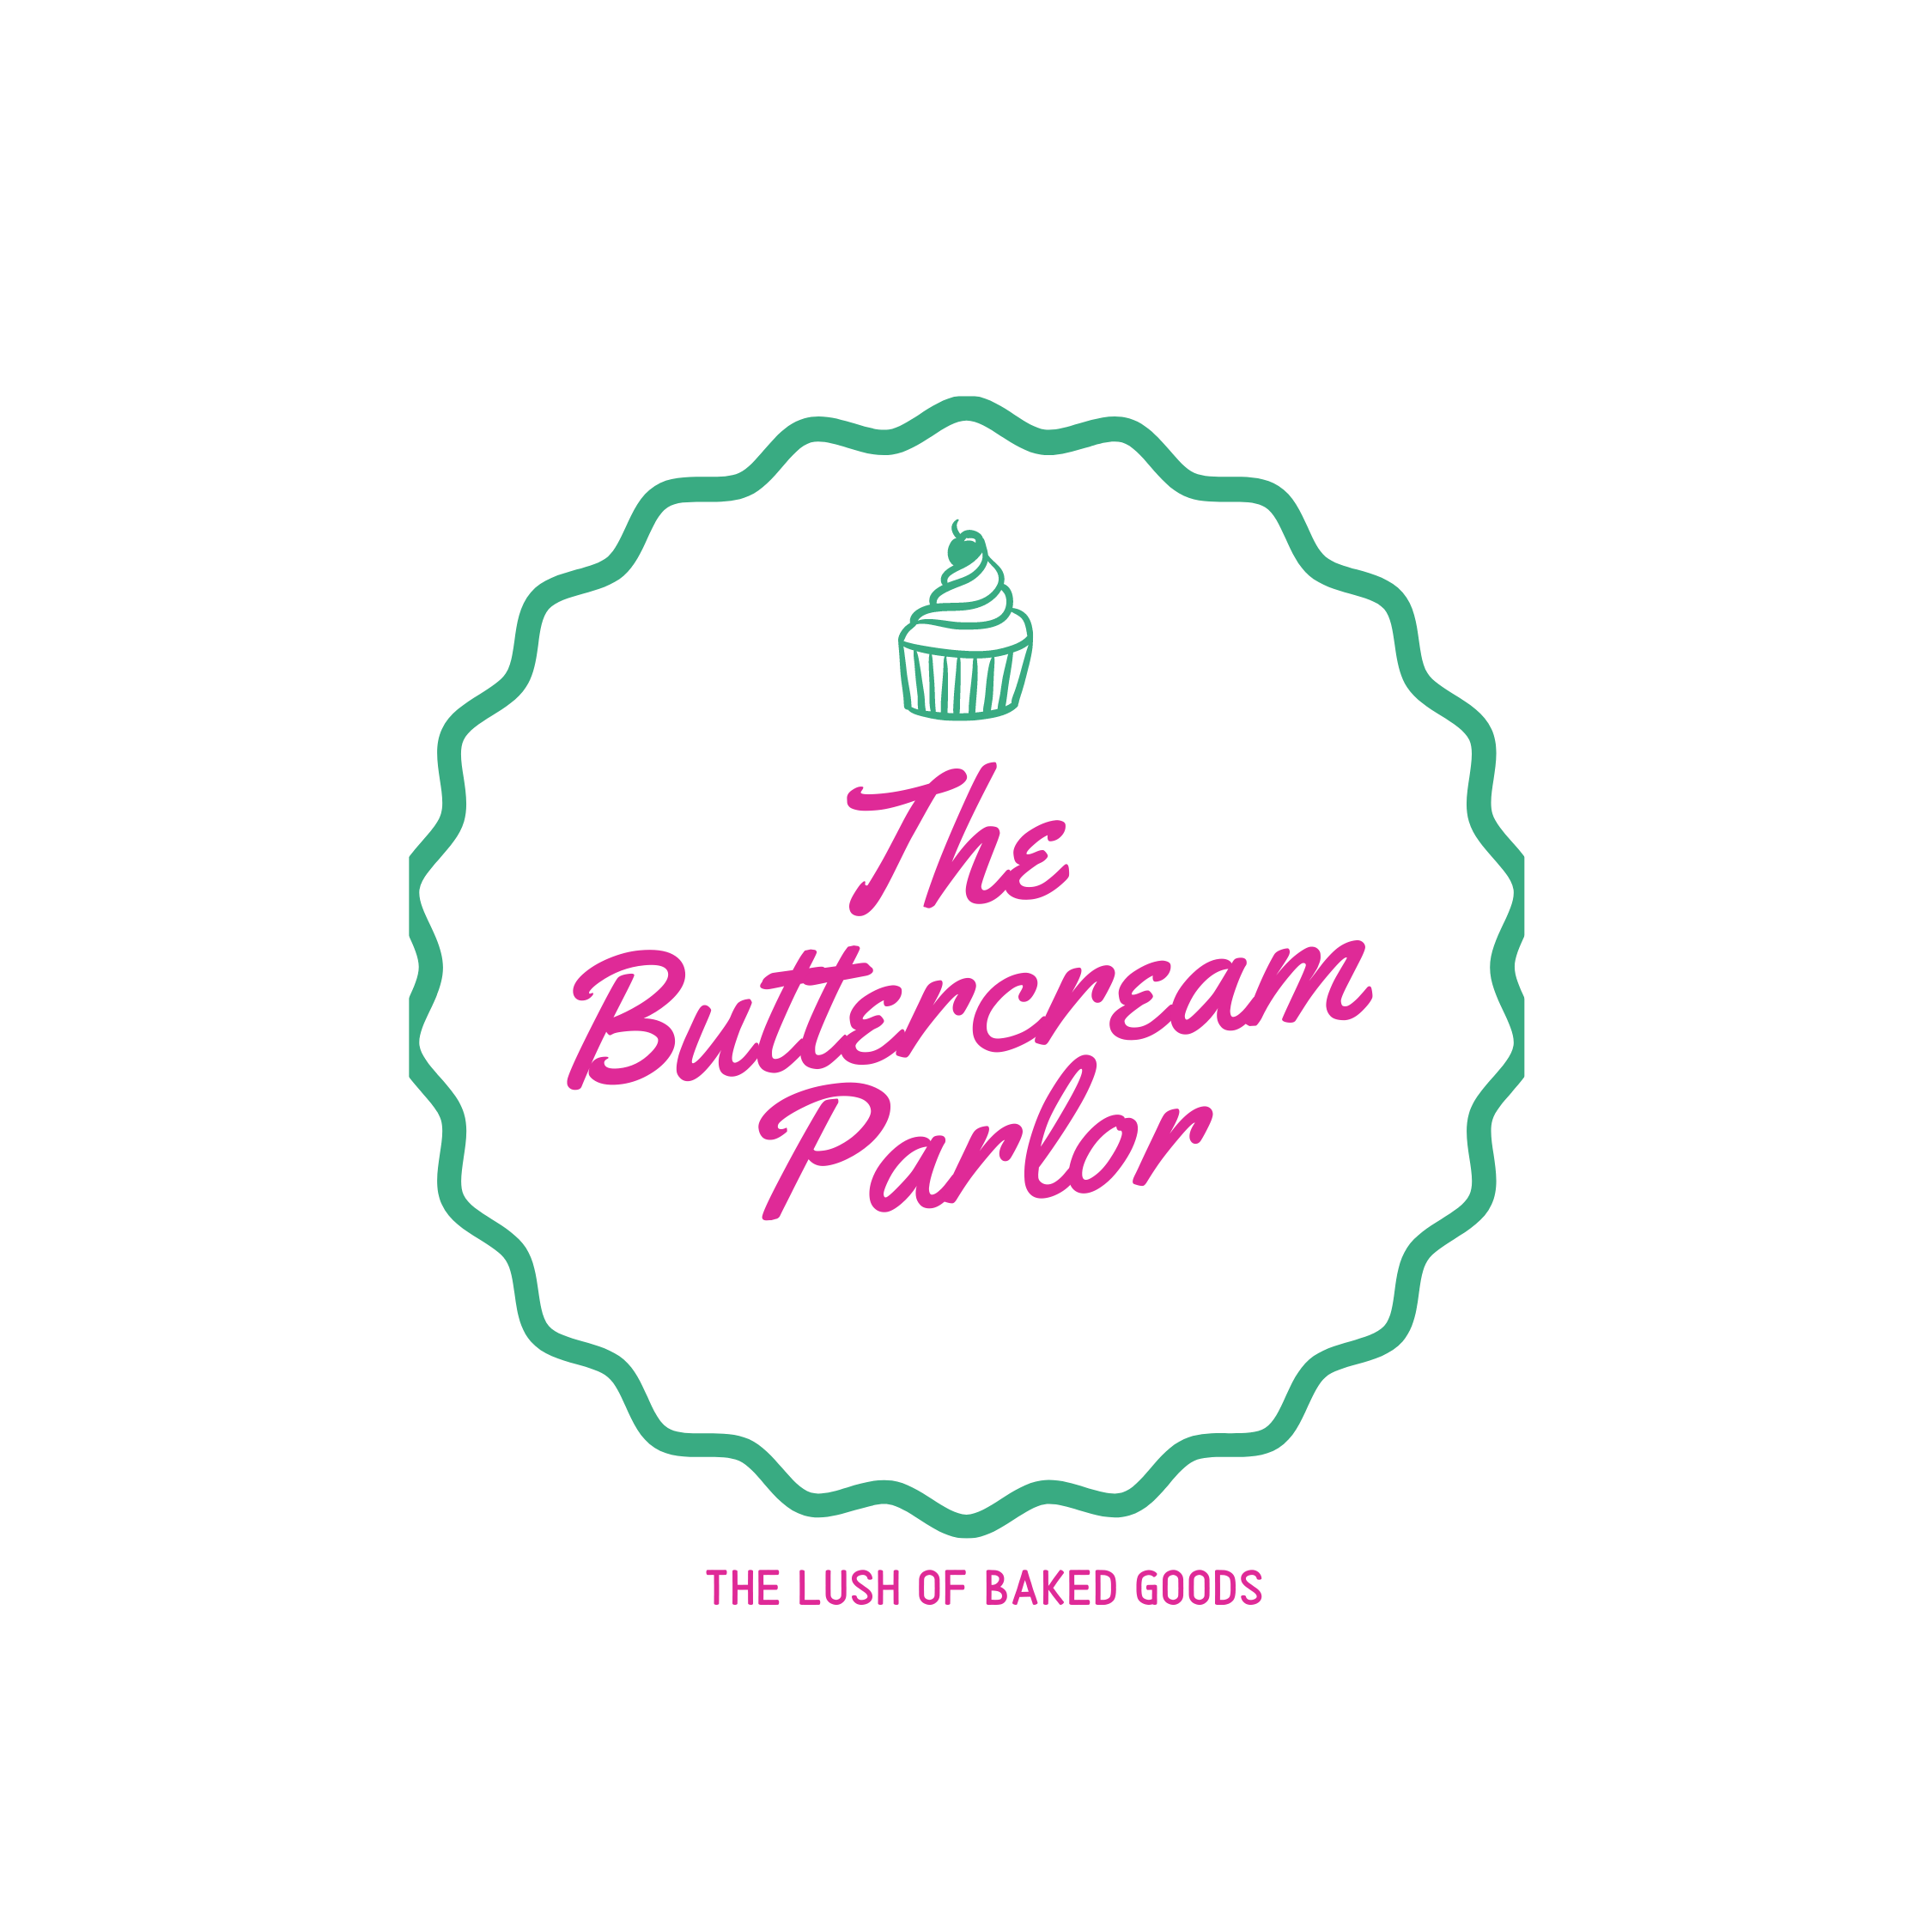 The Buttercream Parlor